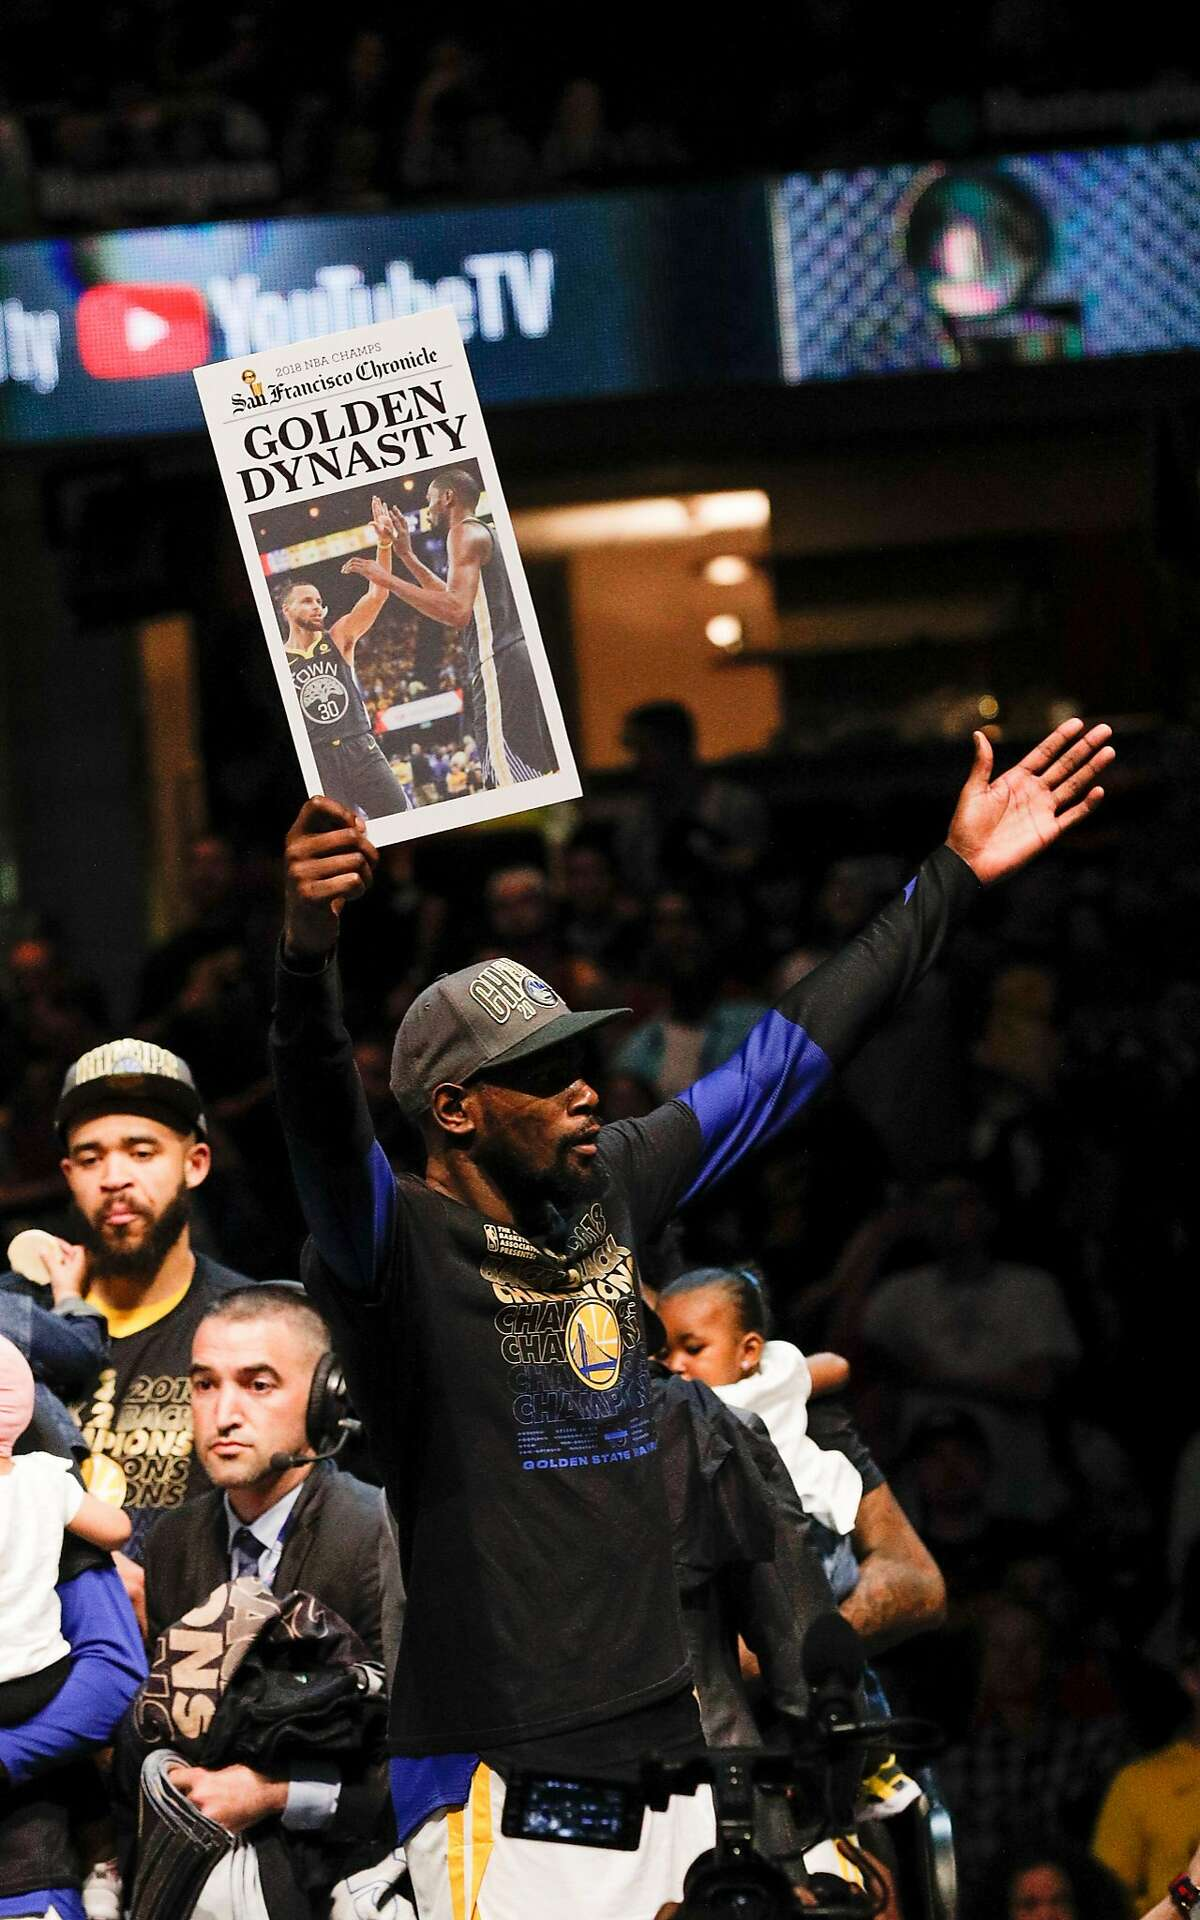 Golden State Warriors' Kevin Durant celebrates after game 4 of The NBA Finals between the Golden State Warriors and the Cleveland Cavaliers at Oracle Arena on Friday, June 8, 2018 in Cleveland, Ohio. The Golden State Warriors defeated the Cleveland Cavaliers 108 to 85 to win the NBA Finals.